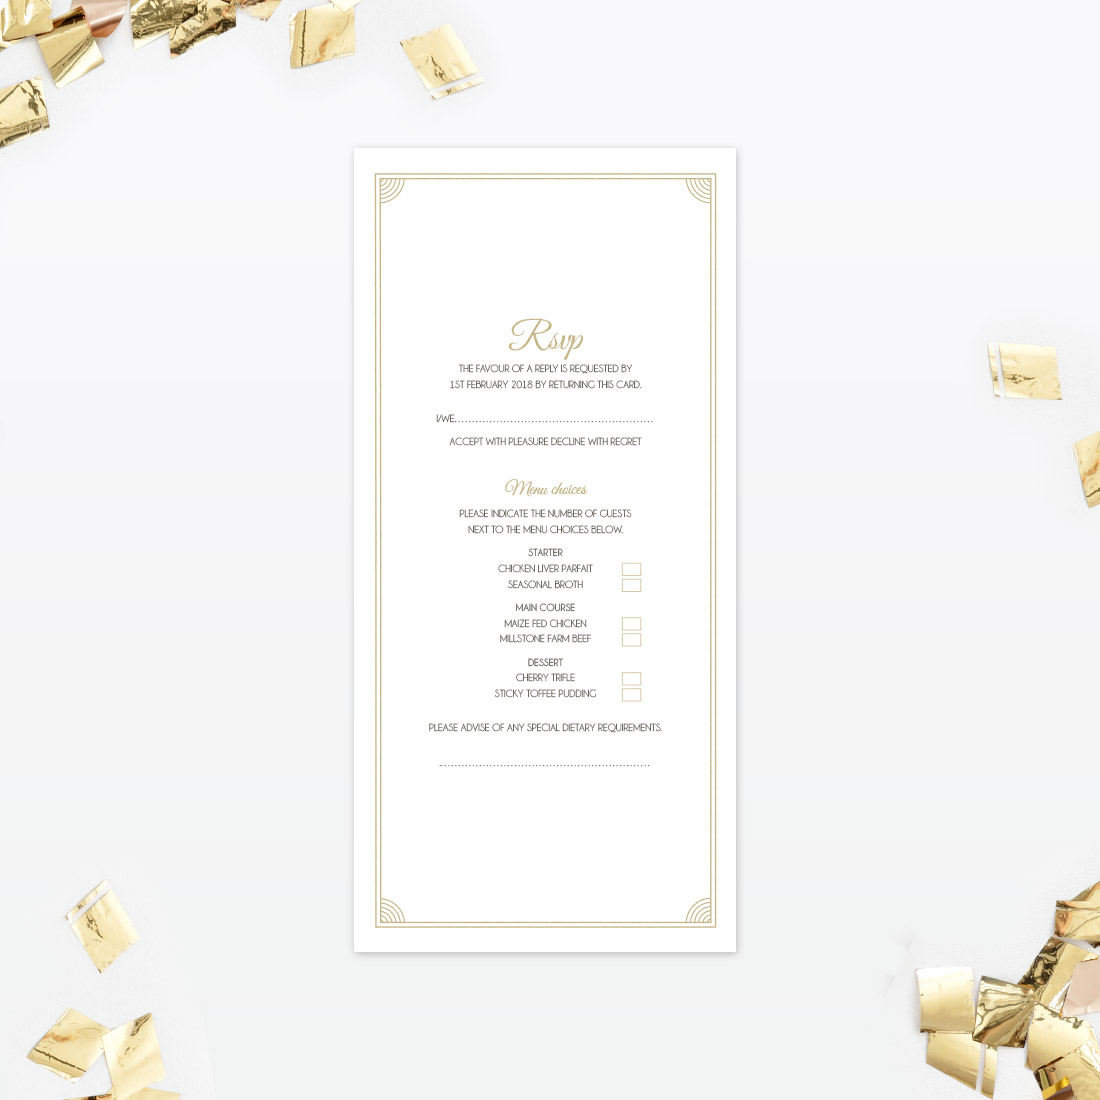 RSVP menu choice wedding wording